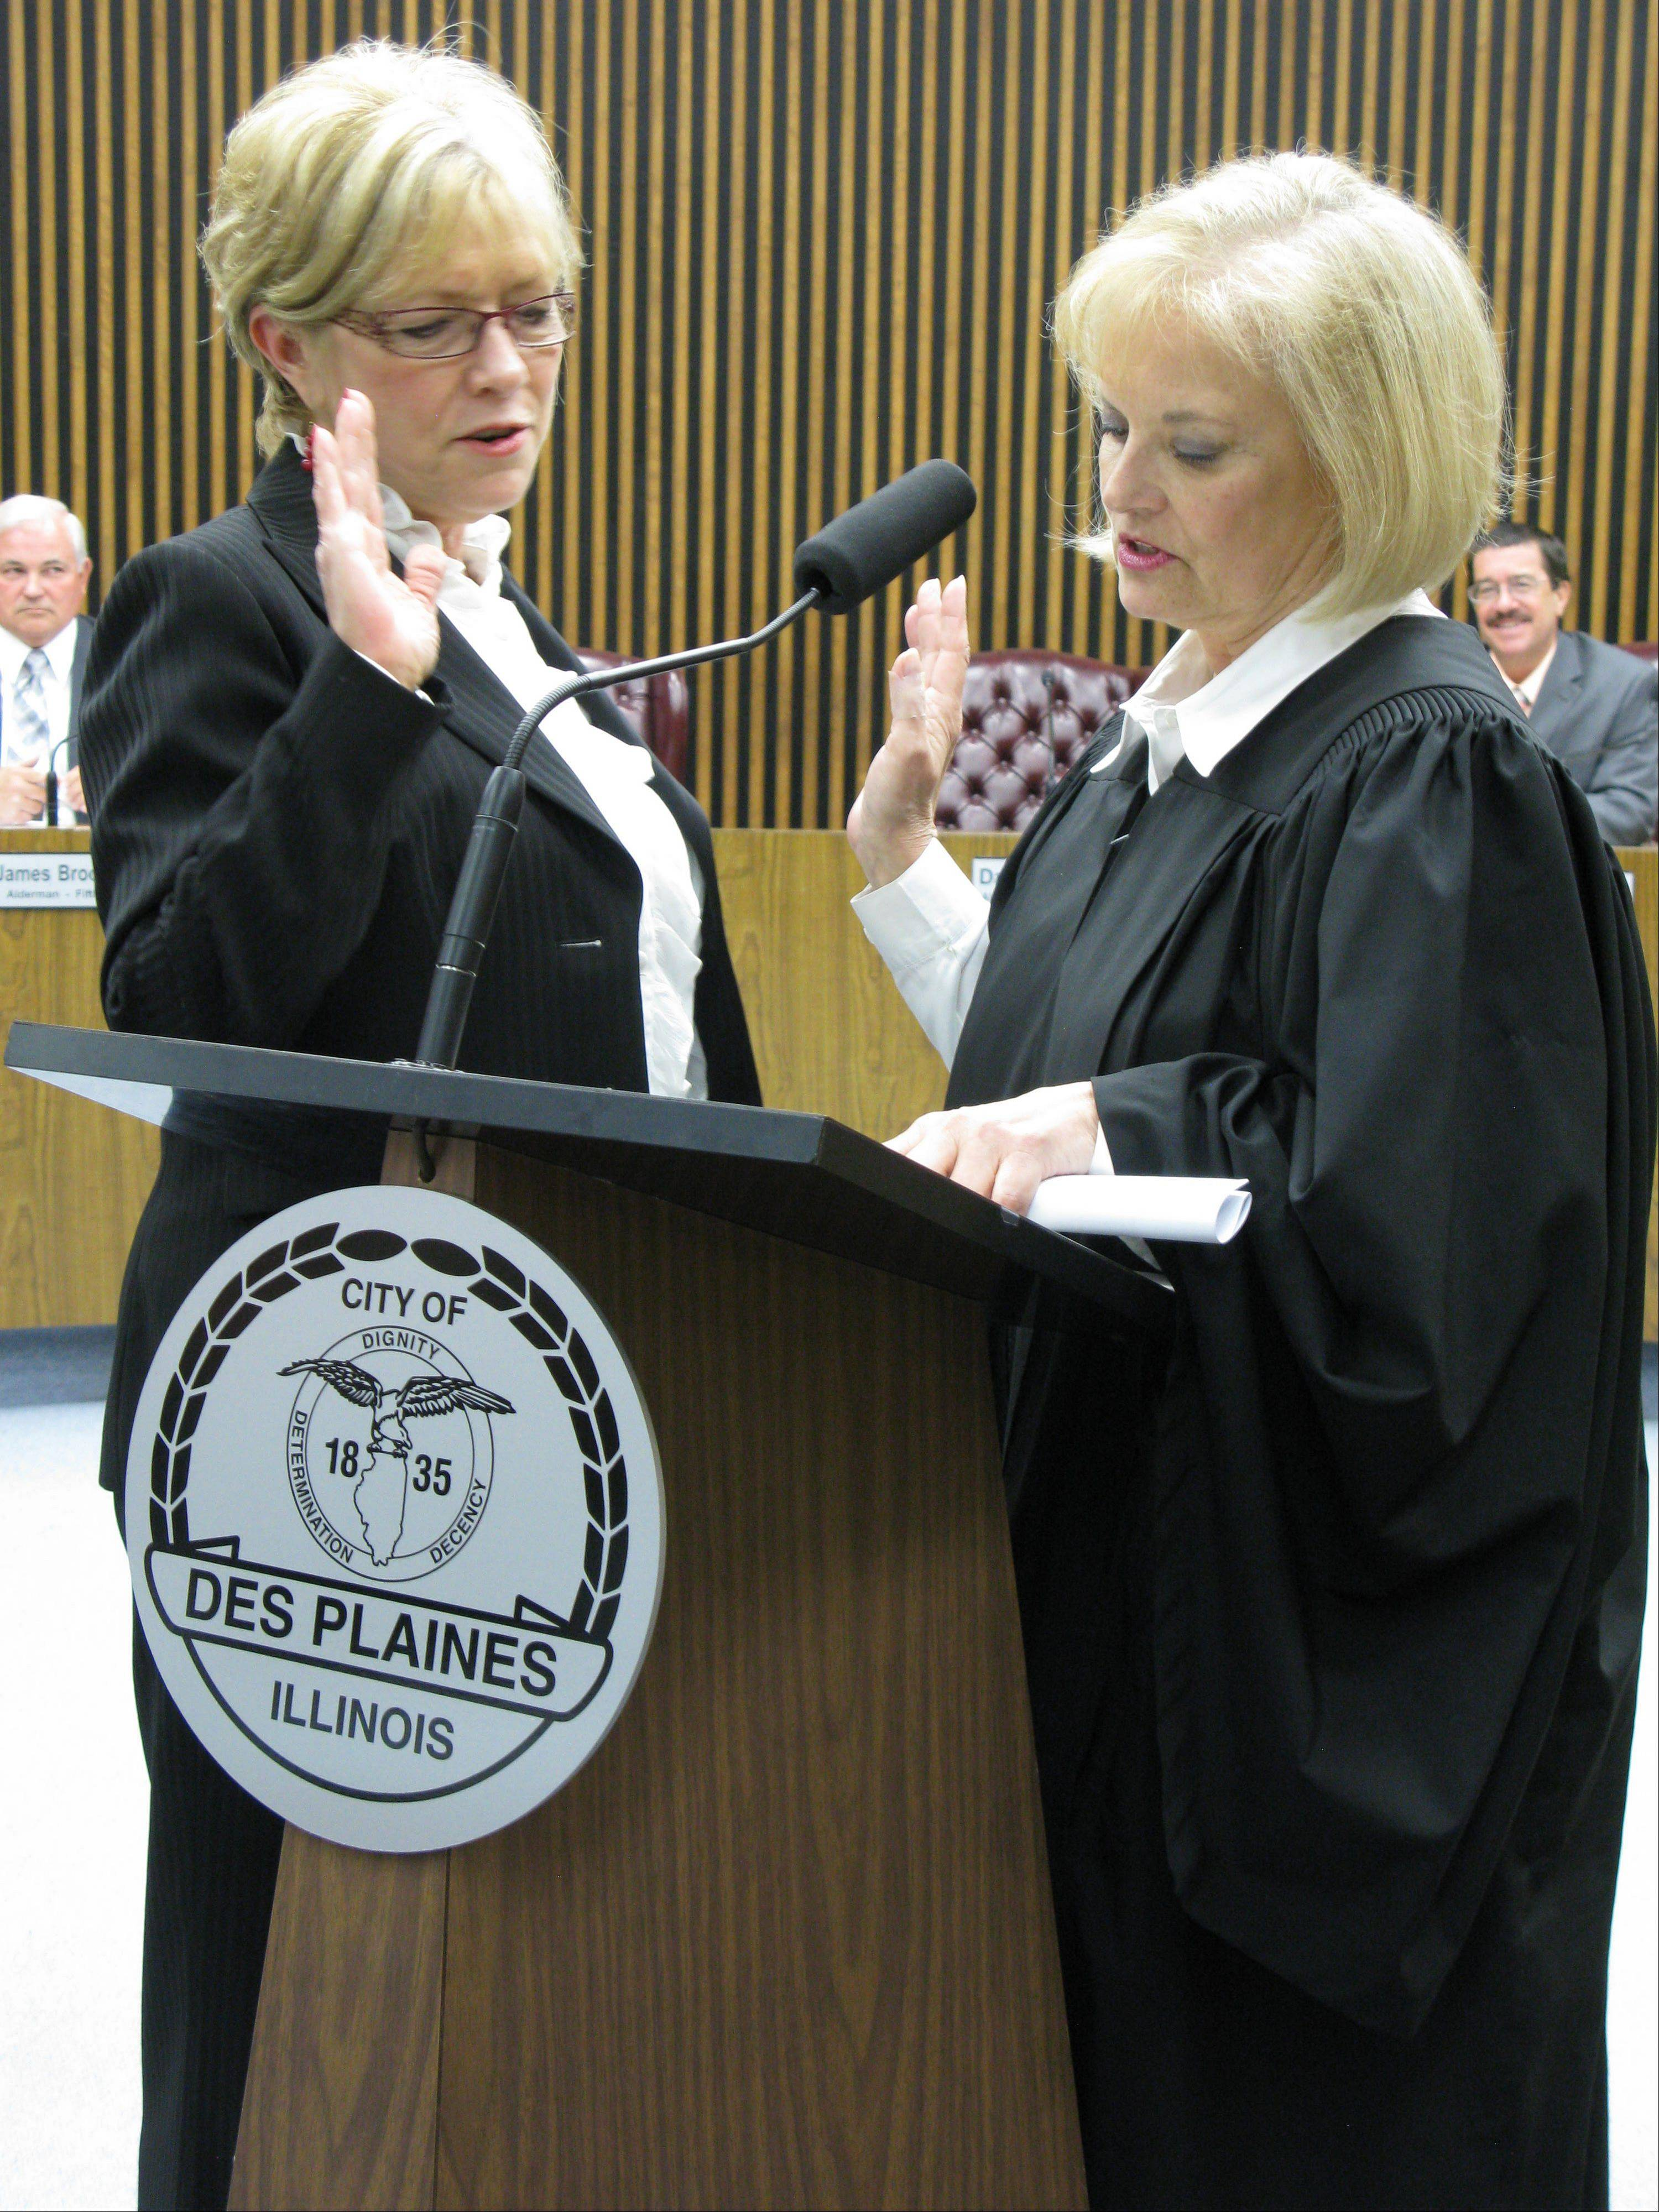 Appellate Court Judge Aurelia Pucinski, right, administers the oath of office to Des Plaines 1st Ward Alderwoman Patti Haugeberg Monday night.